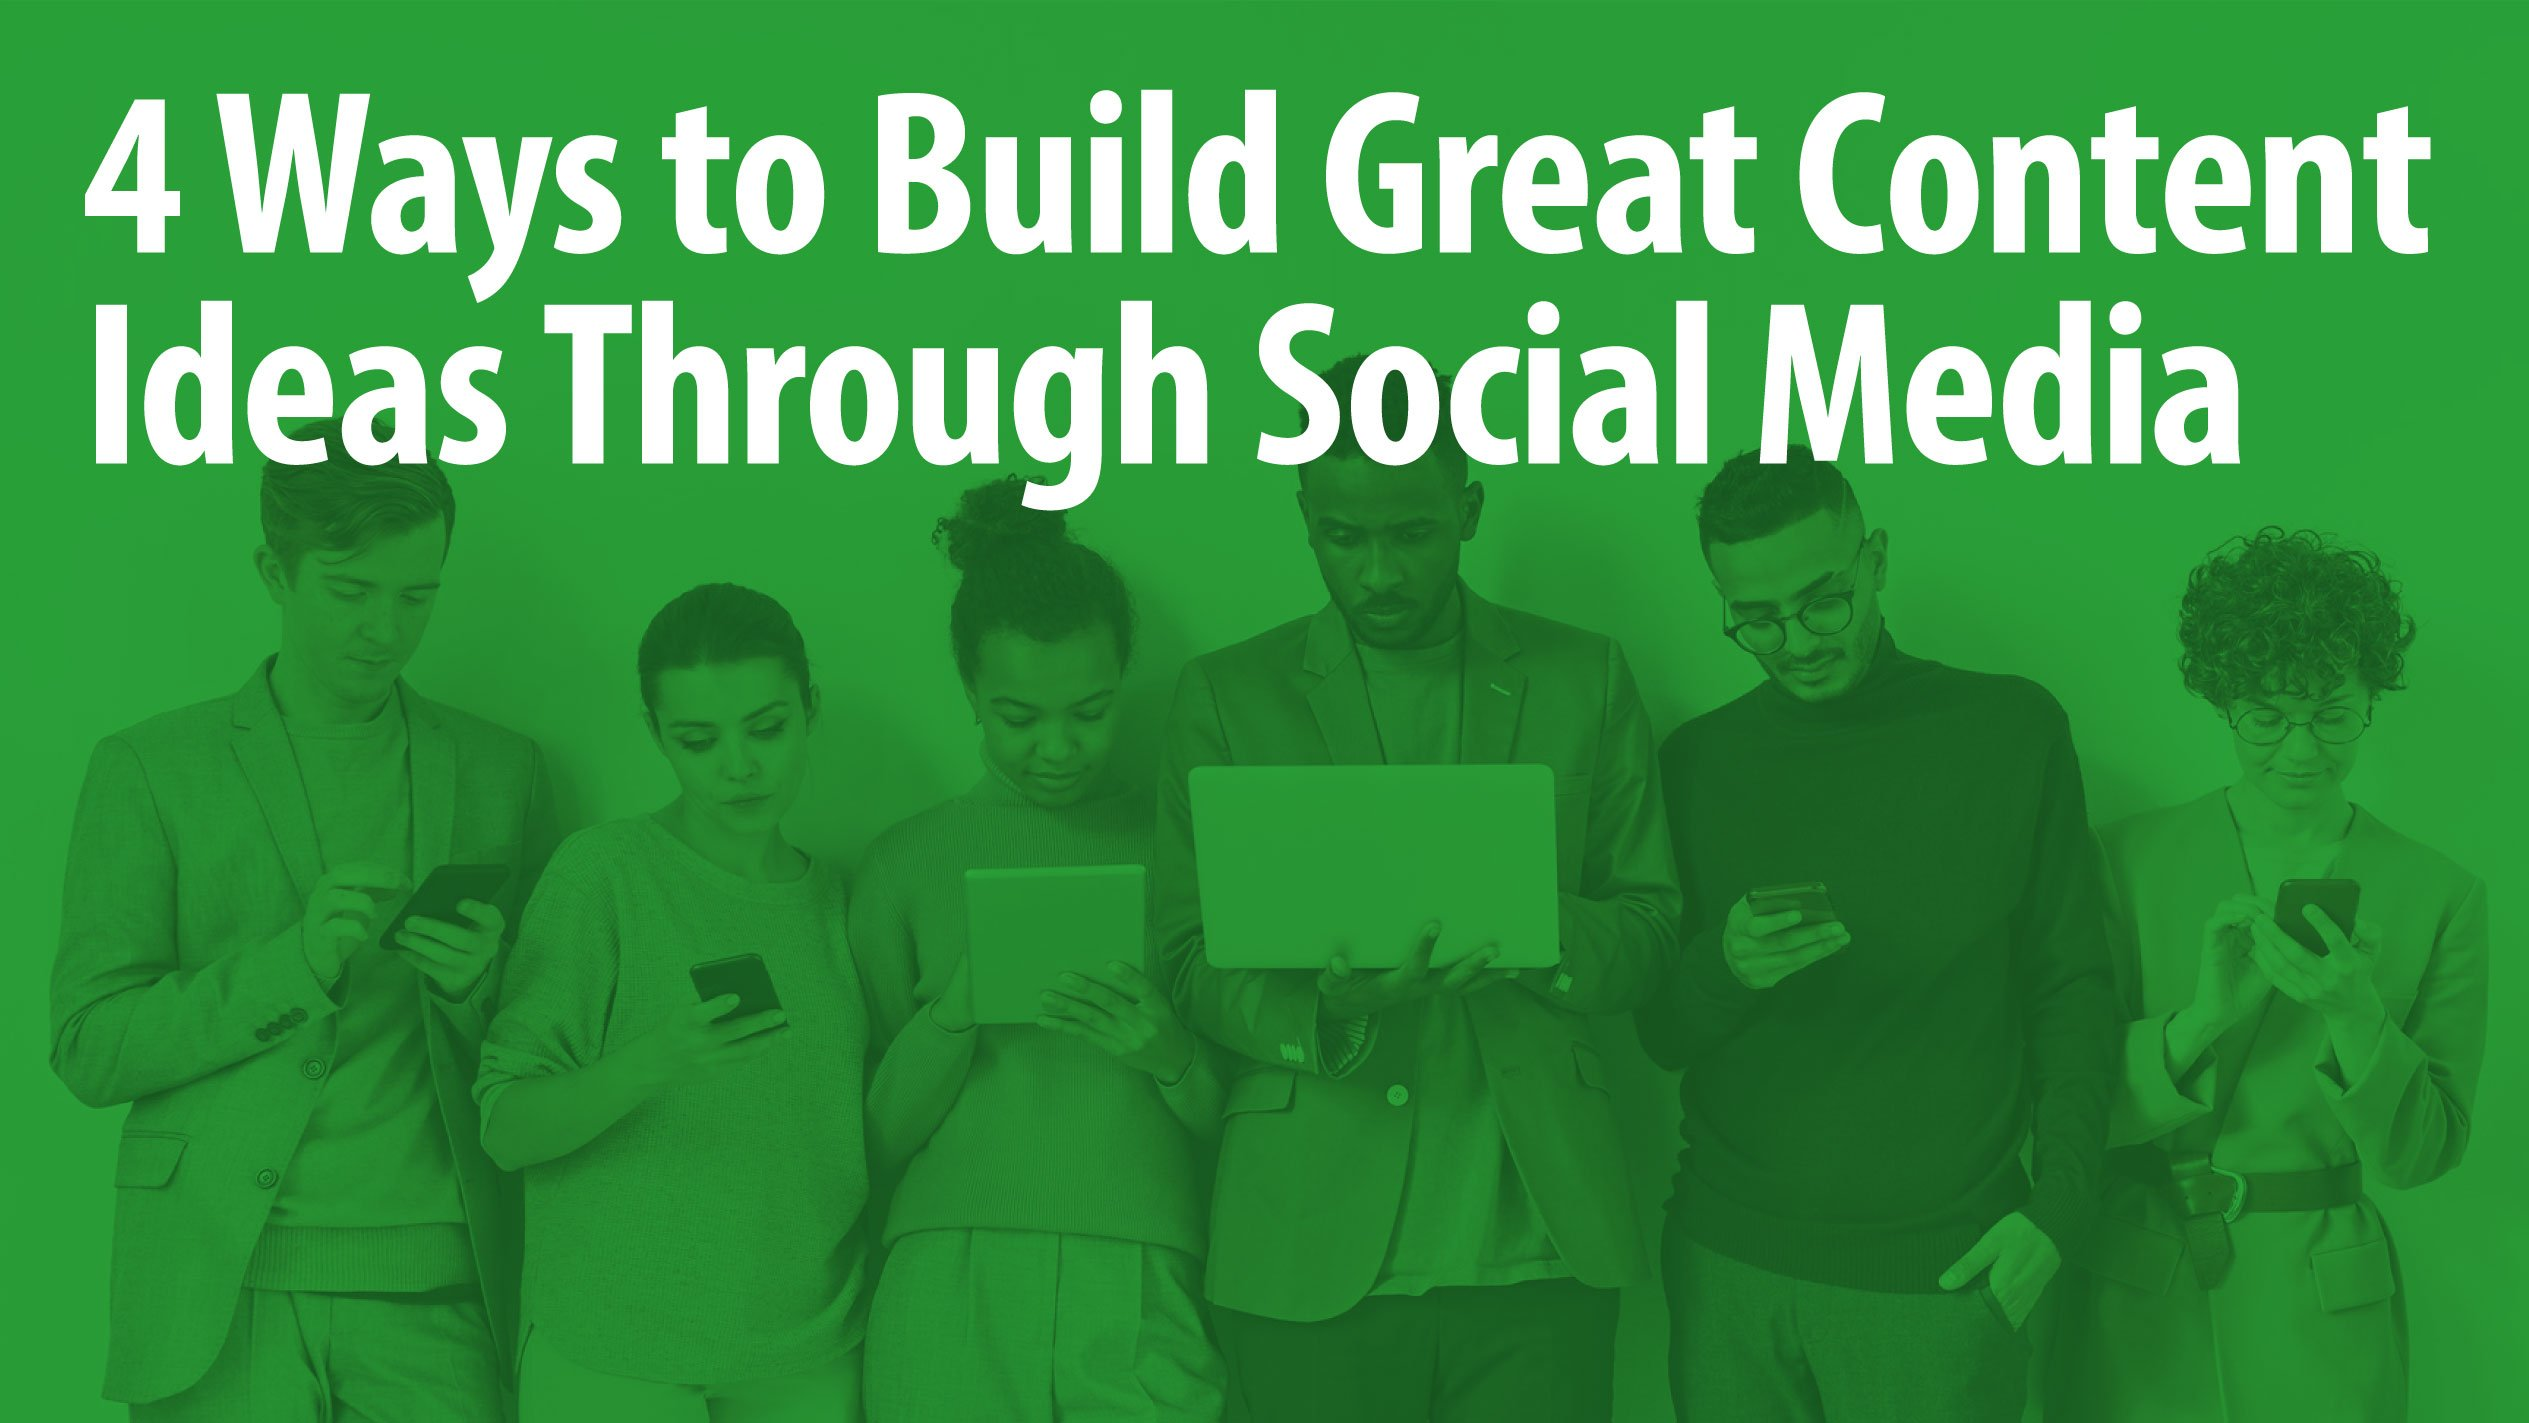 4 Ways to Build Great Content Ideas Through Social Media